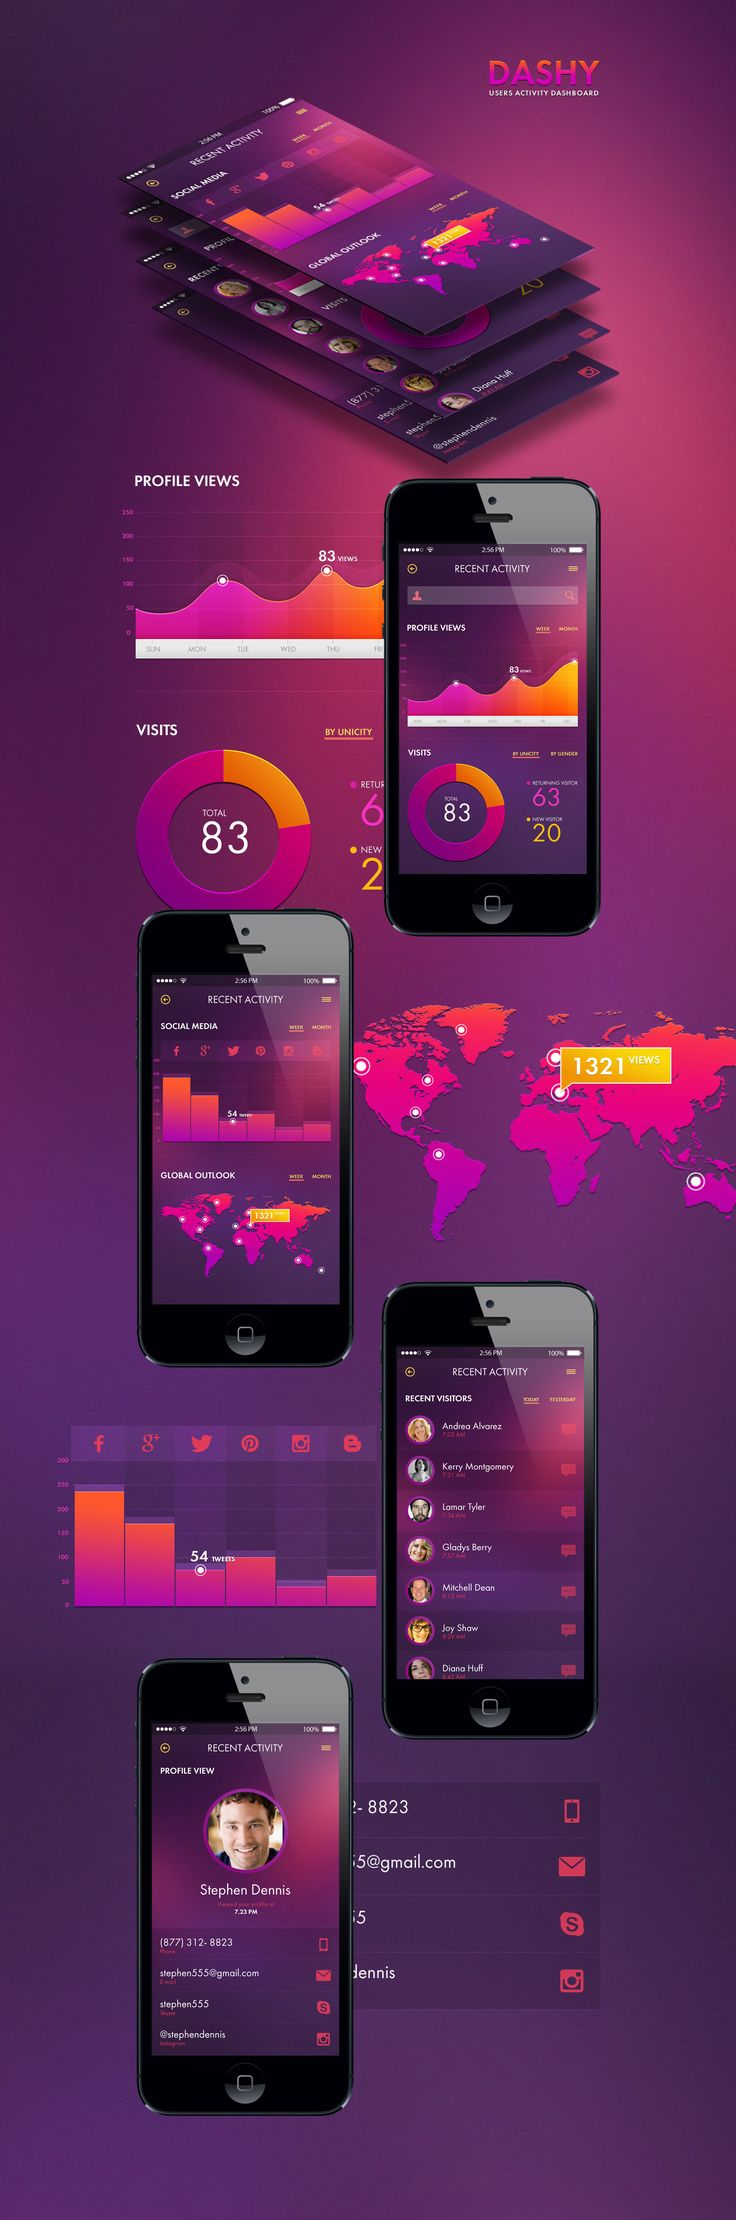 DASHY - Dashboard UI Design on Behance